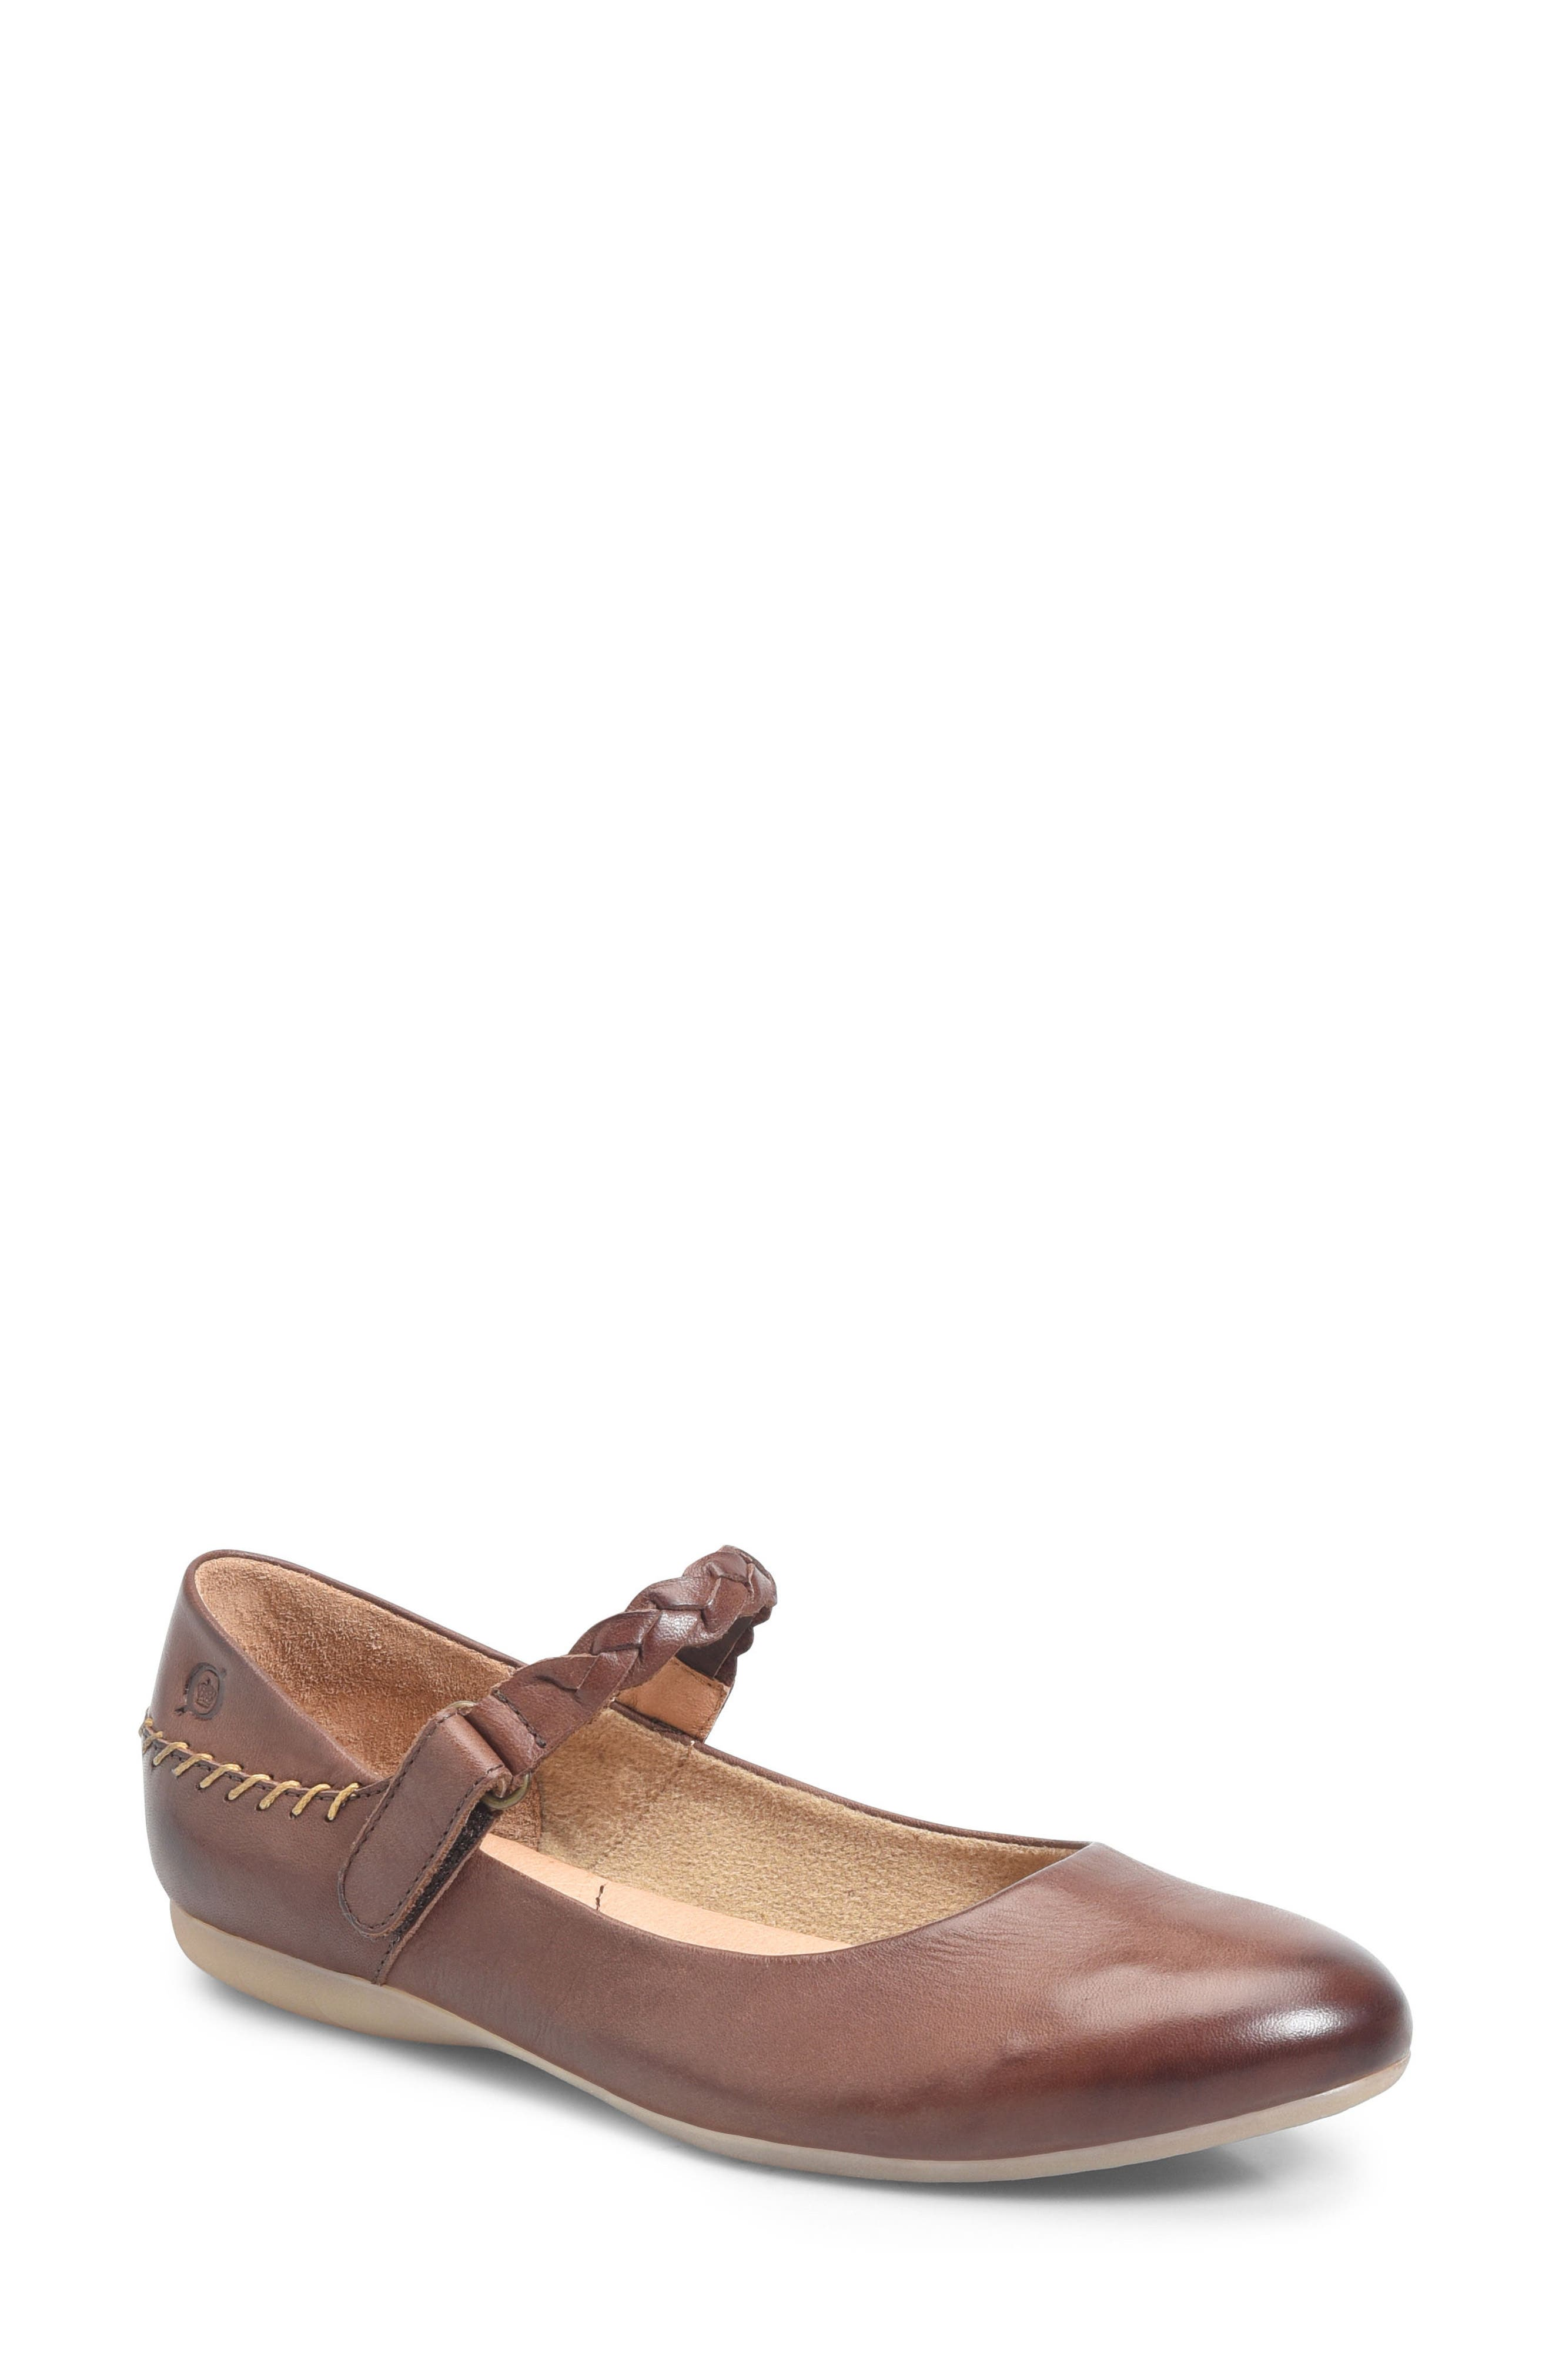 Mary Jane Flat,                             Main thumbnail 1, color,                             Brown Leather